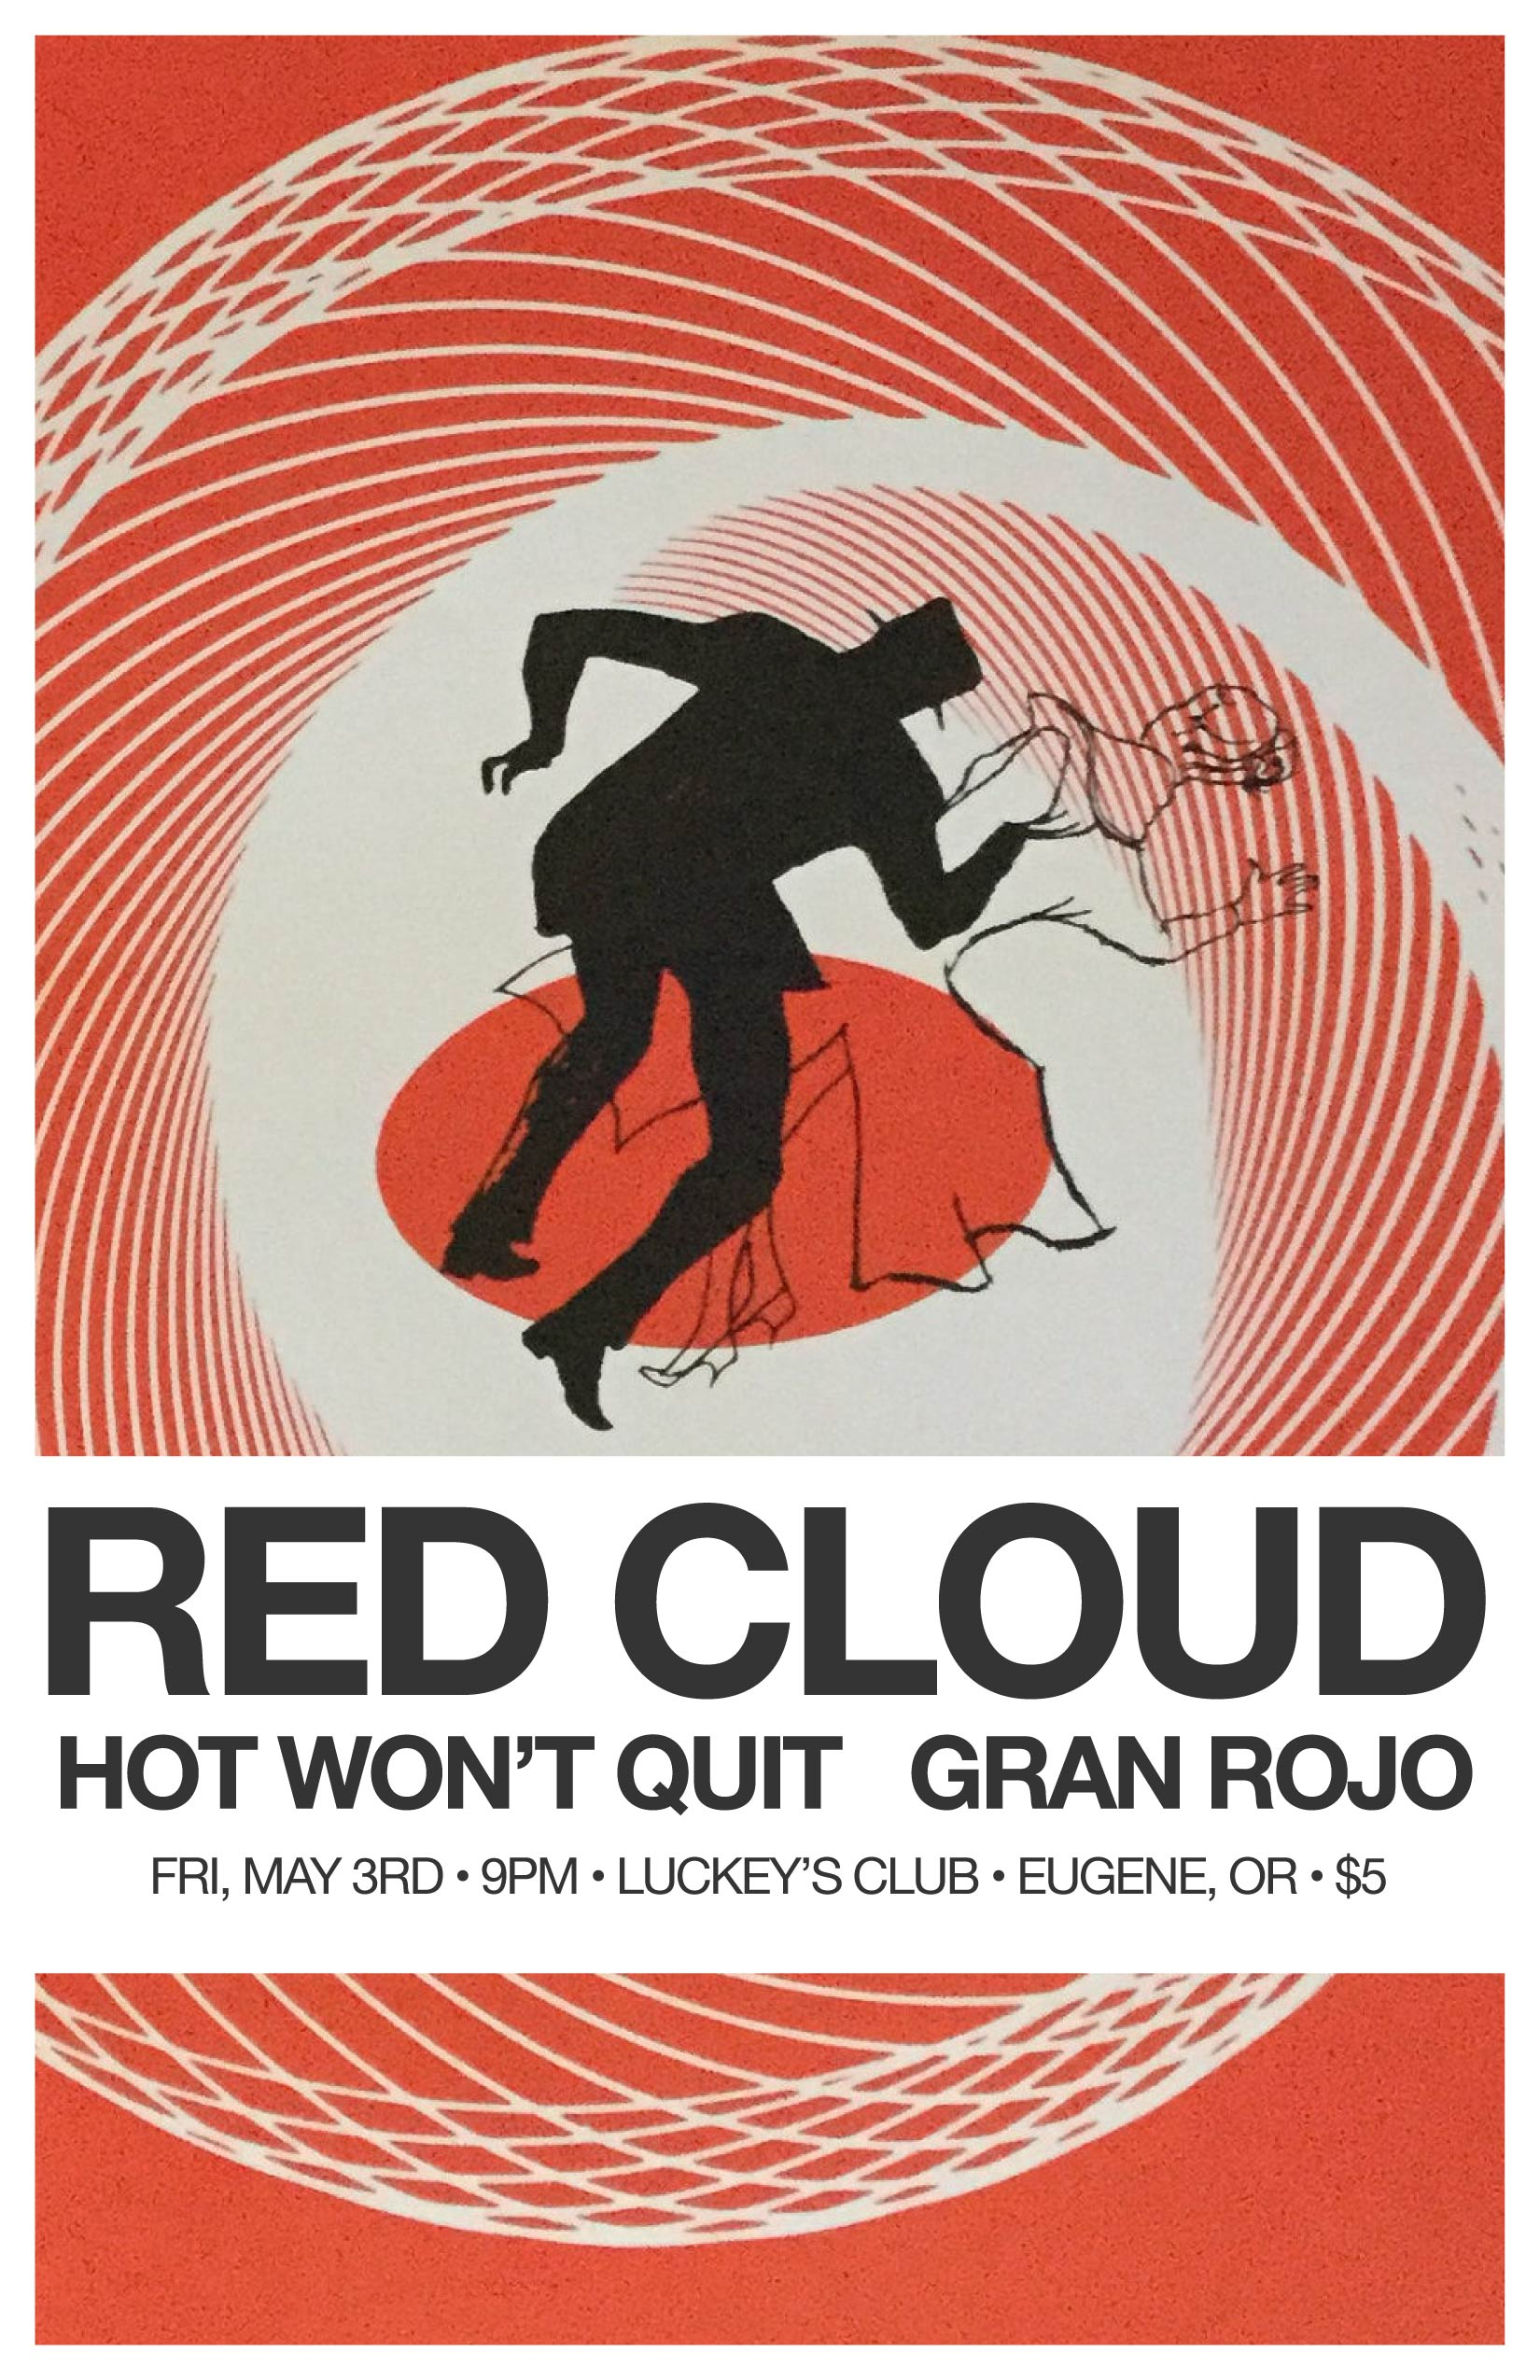 Red Cloud / Hot Wont Quit / Gran Rojo